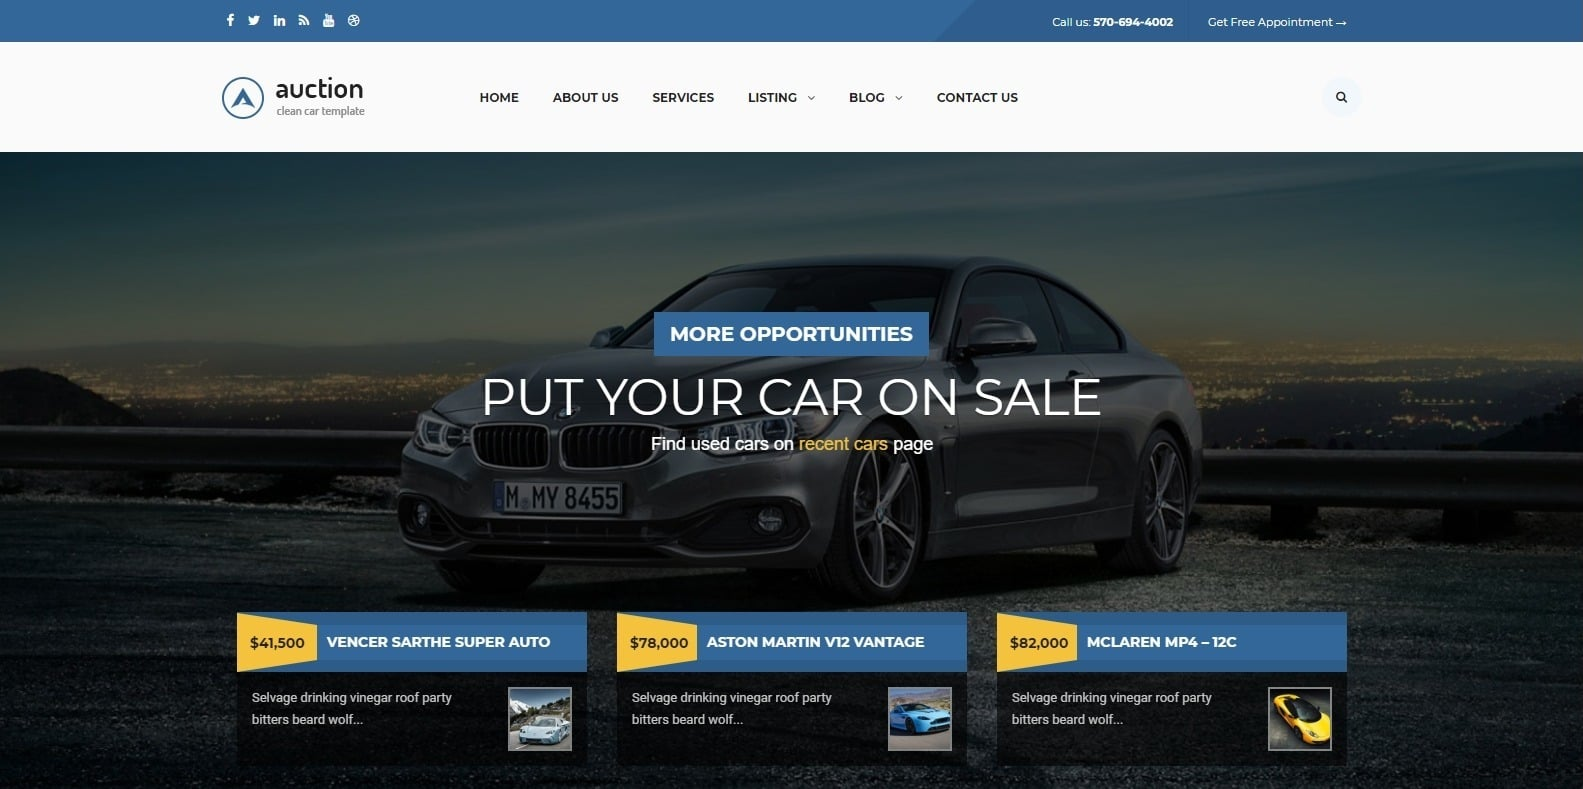 13 Wordpress Auction Website Template Options For Beginners 2020